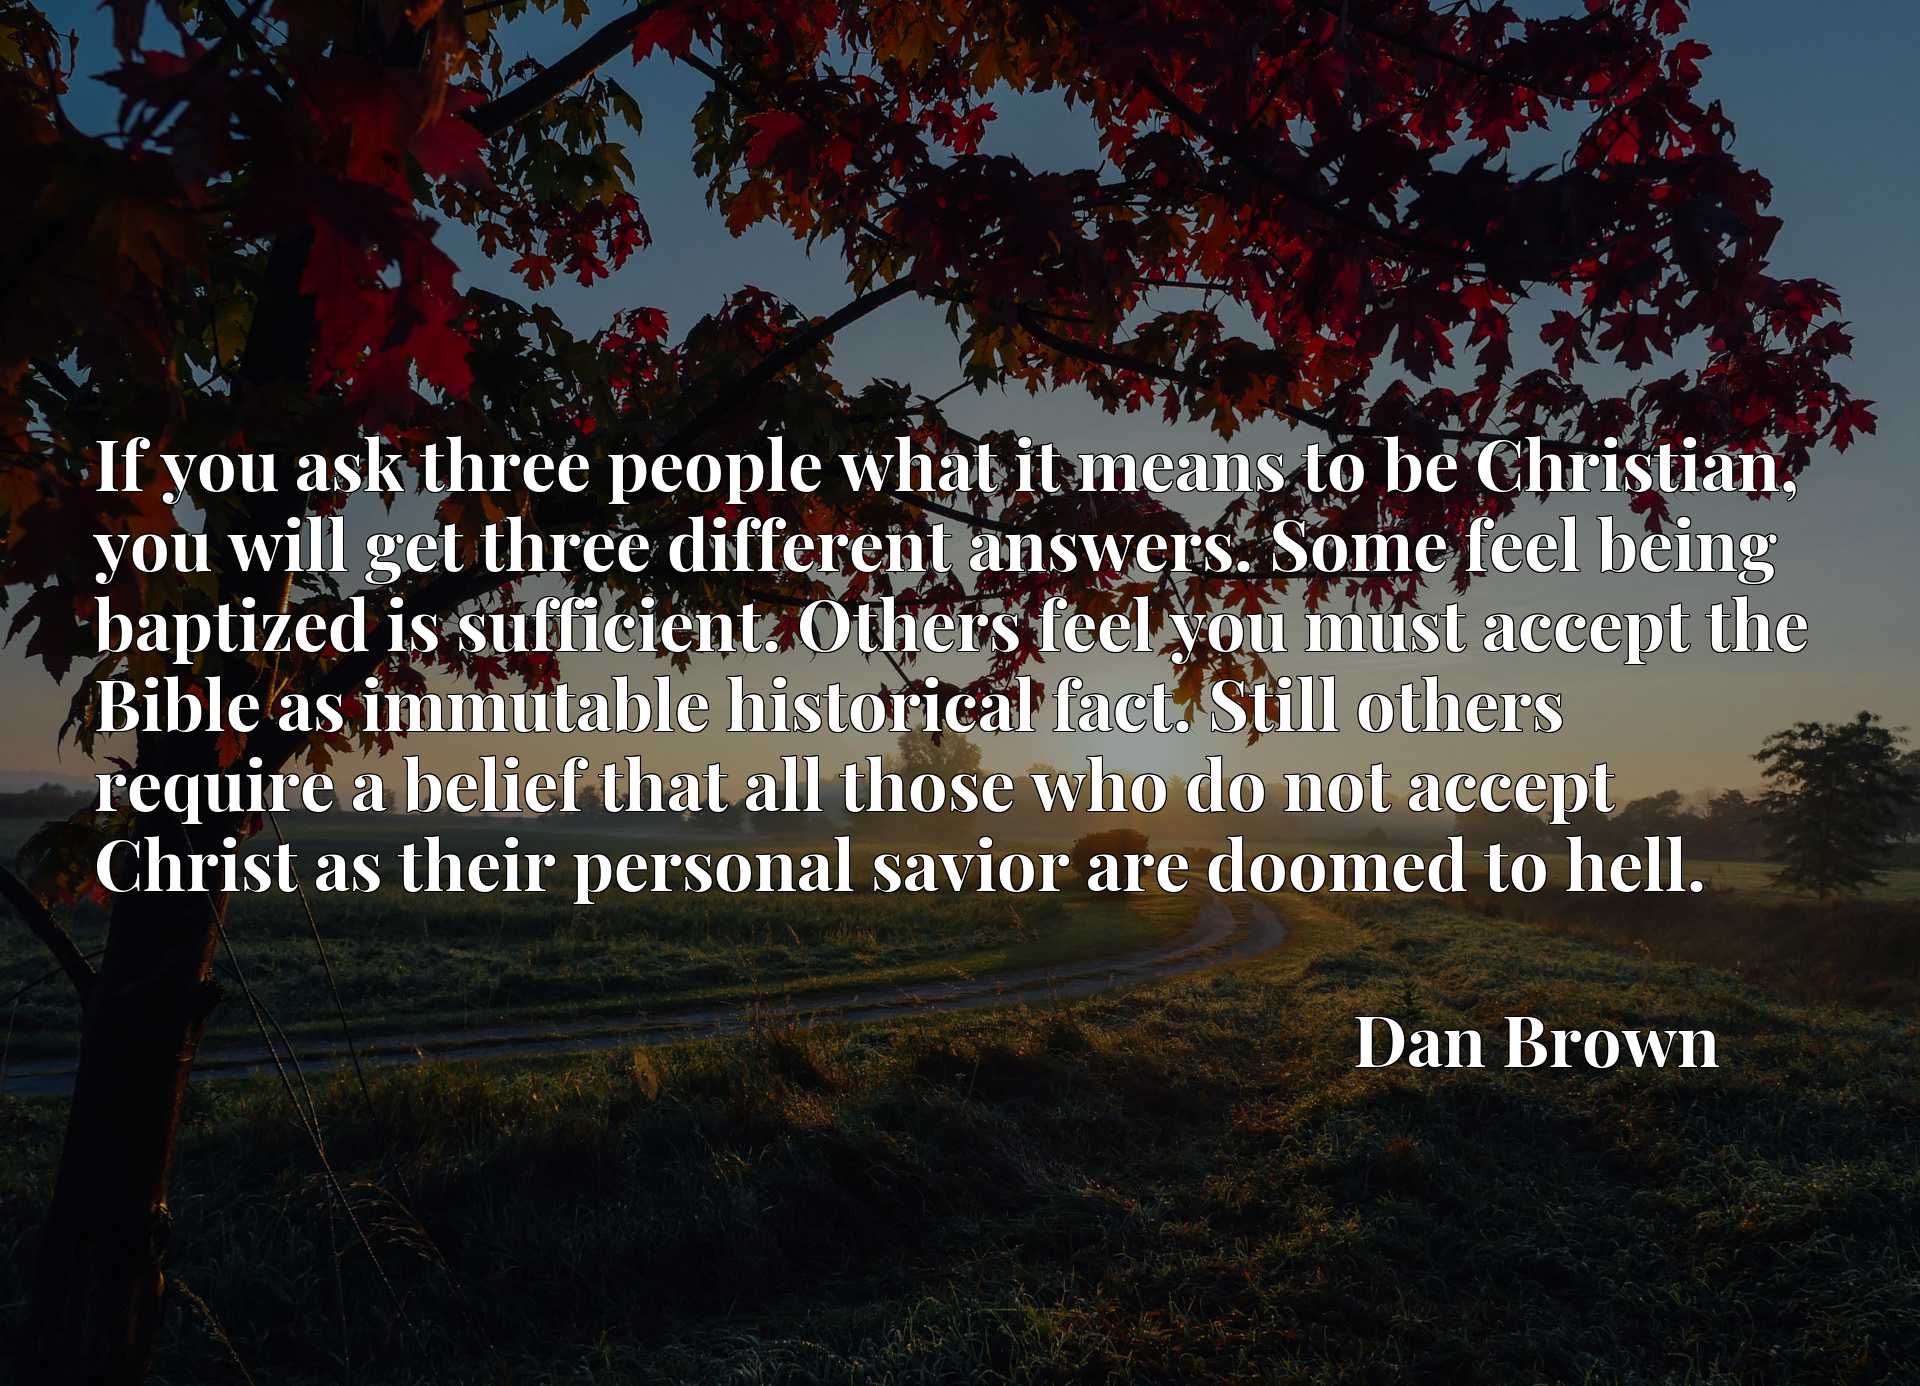 If you ask three people what it means to be Christian, you will get three different answers. Some feel being baptized is sufficient. Others feel you must accept the Bible as immutable historical fact. Still others require a belief that all those who do not accept Christ as their personal savior are doomed to hell.